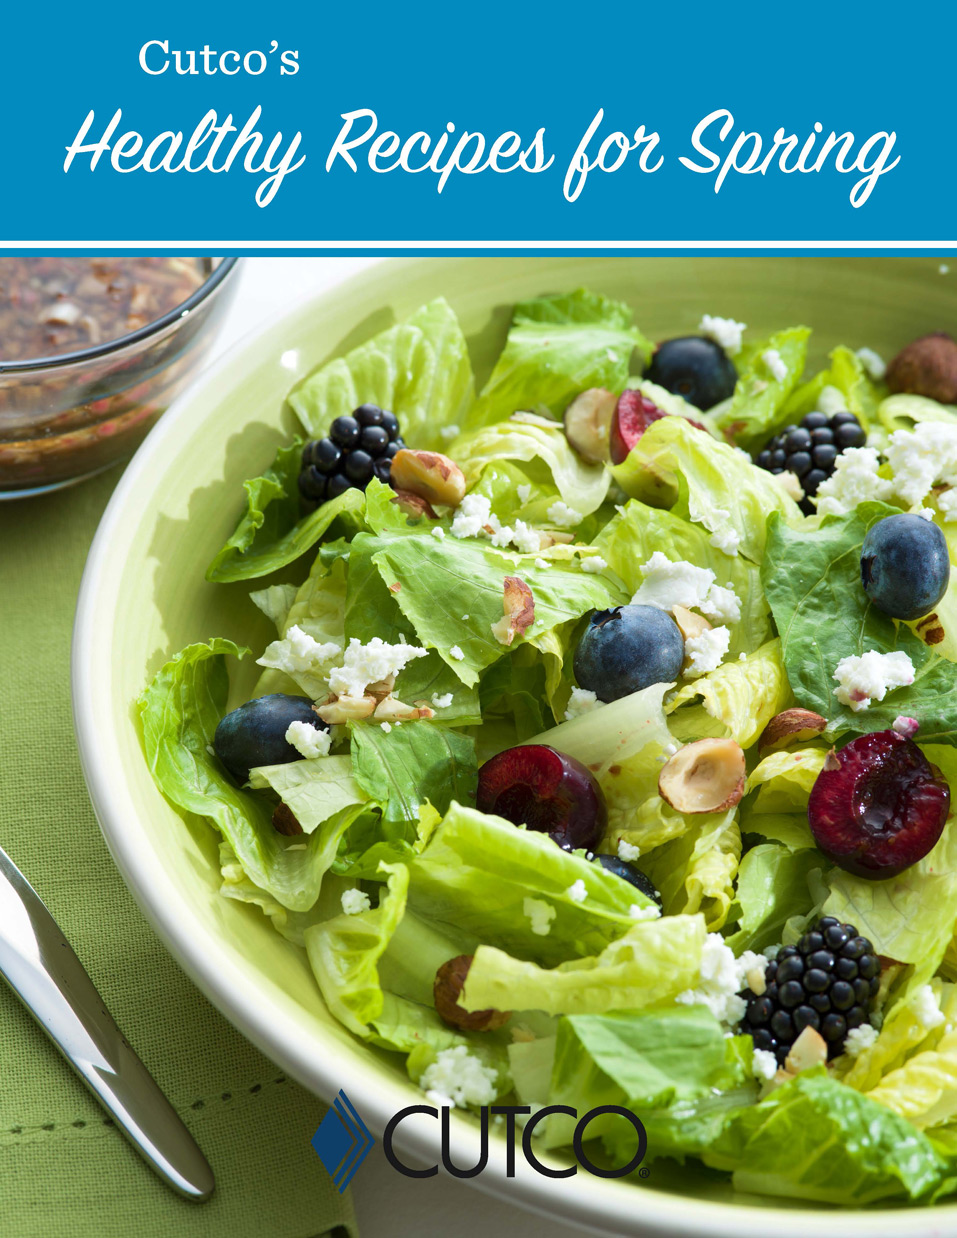 Cutco's Helthy Recipes for Spring